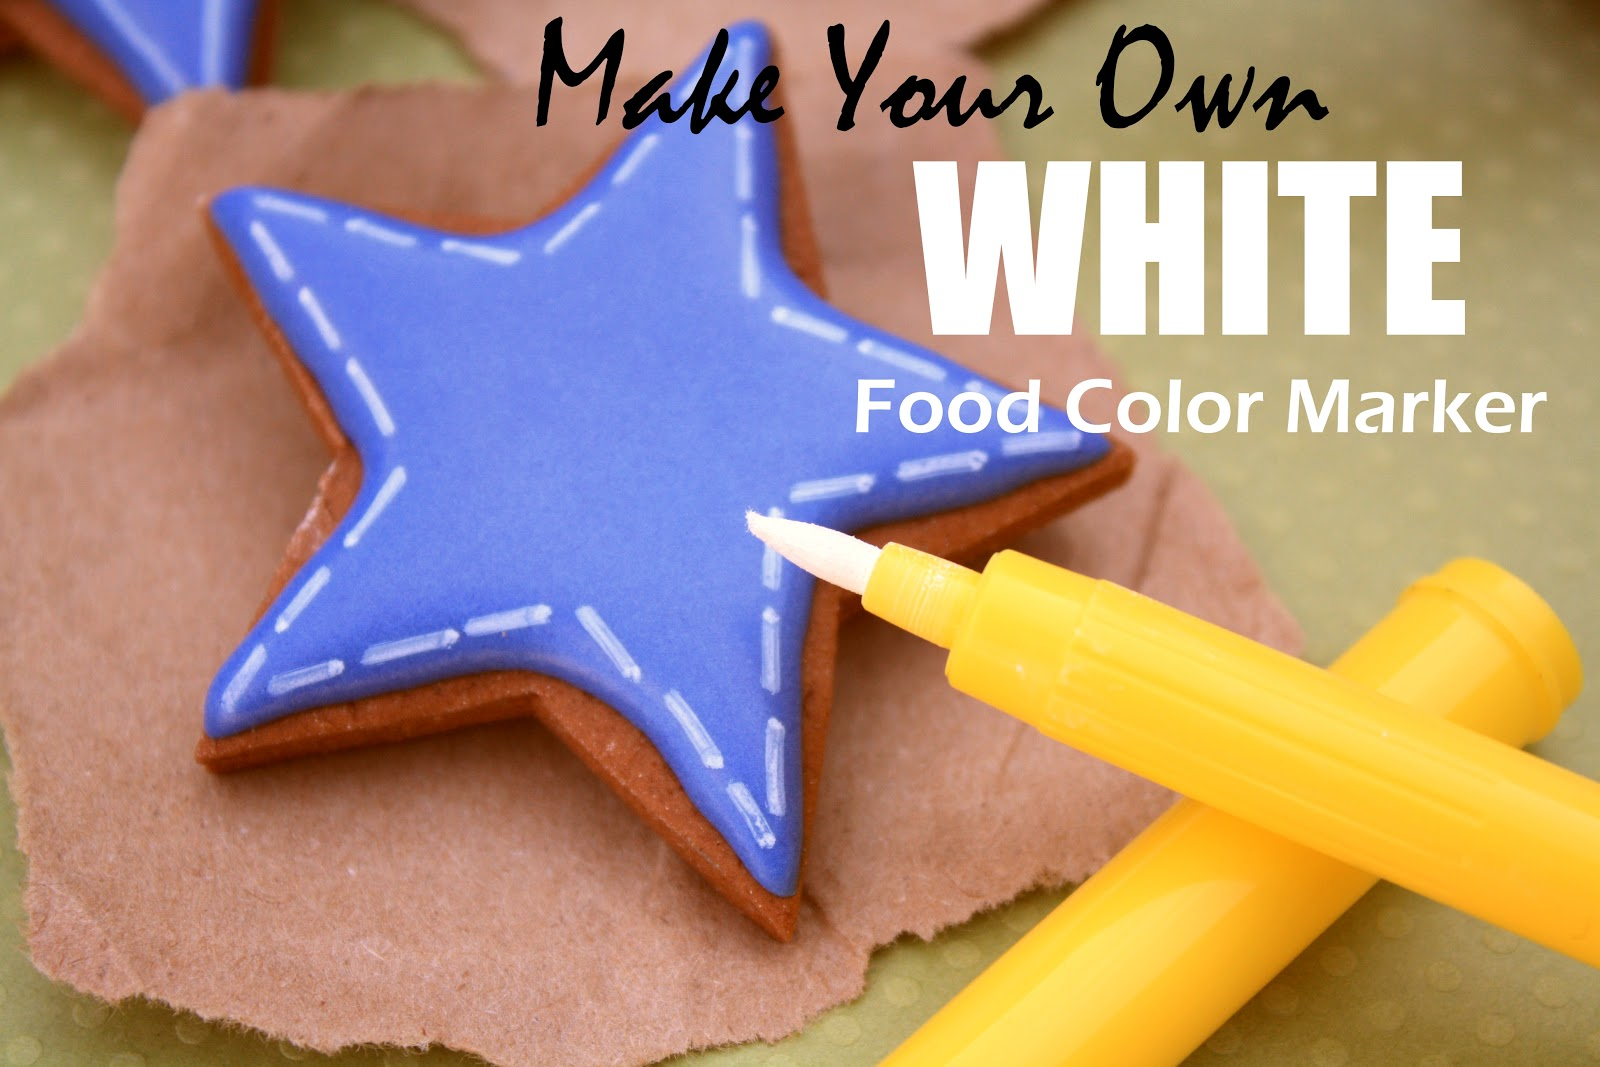 Make Your Own WHITE Food Color Marker